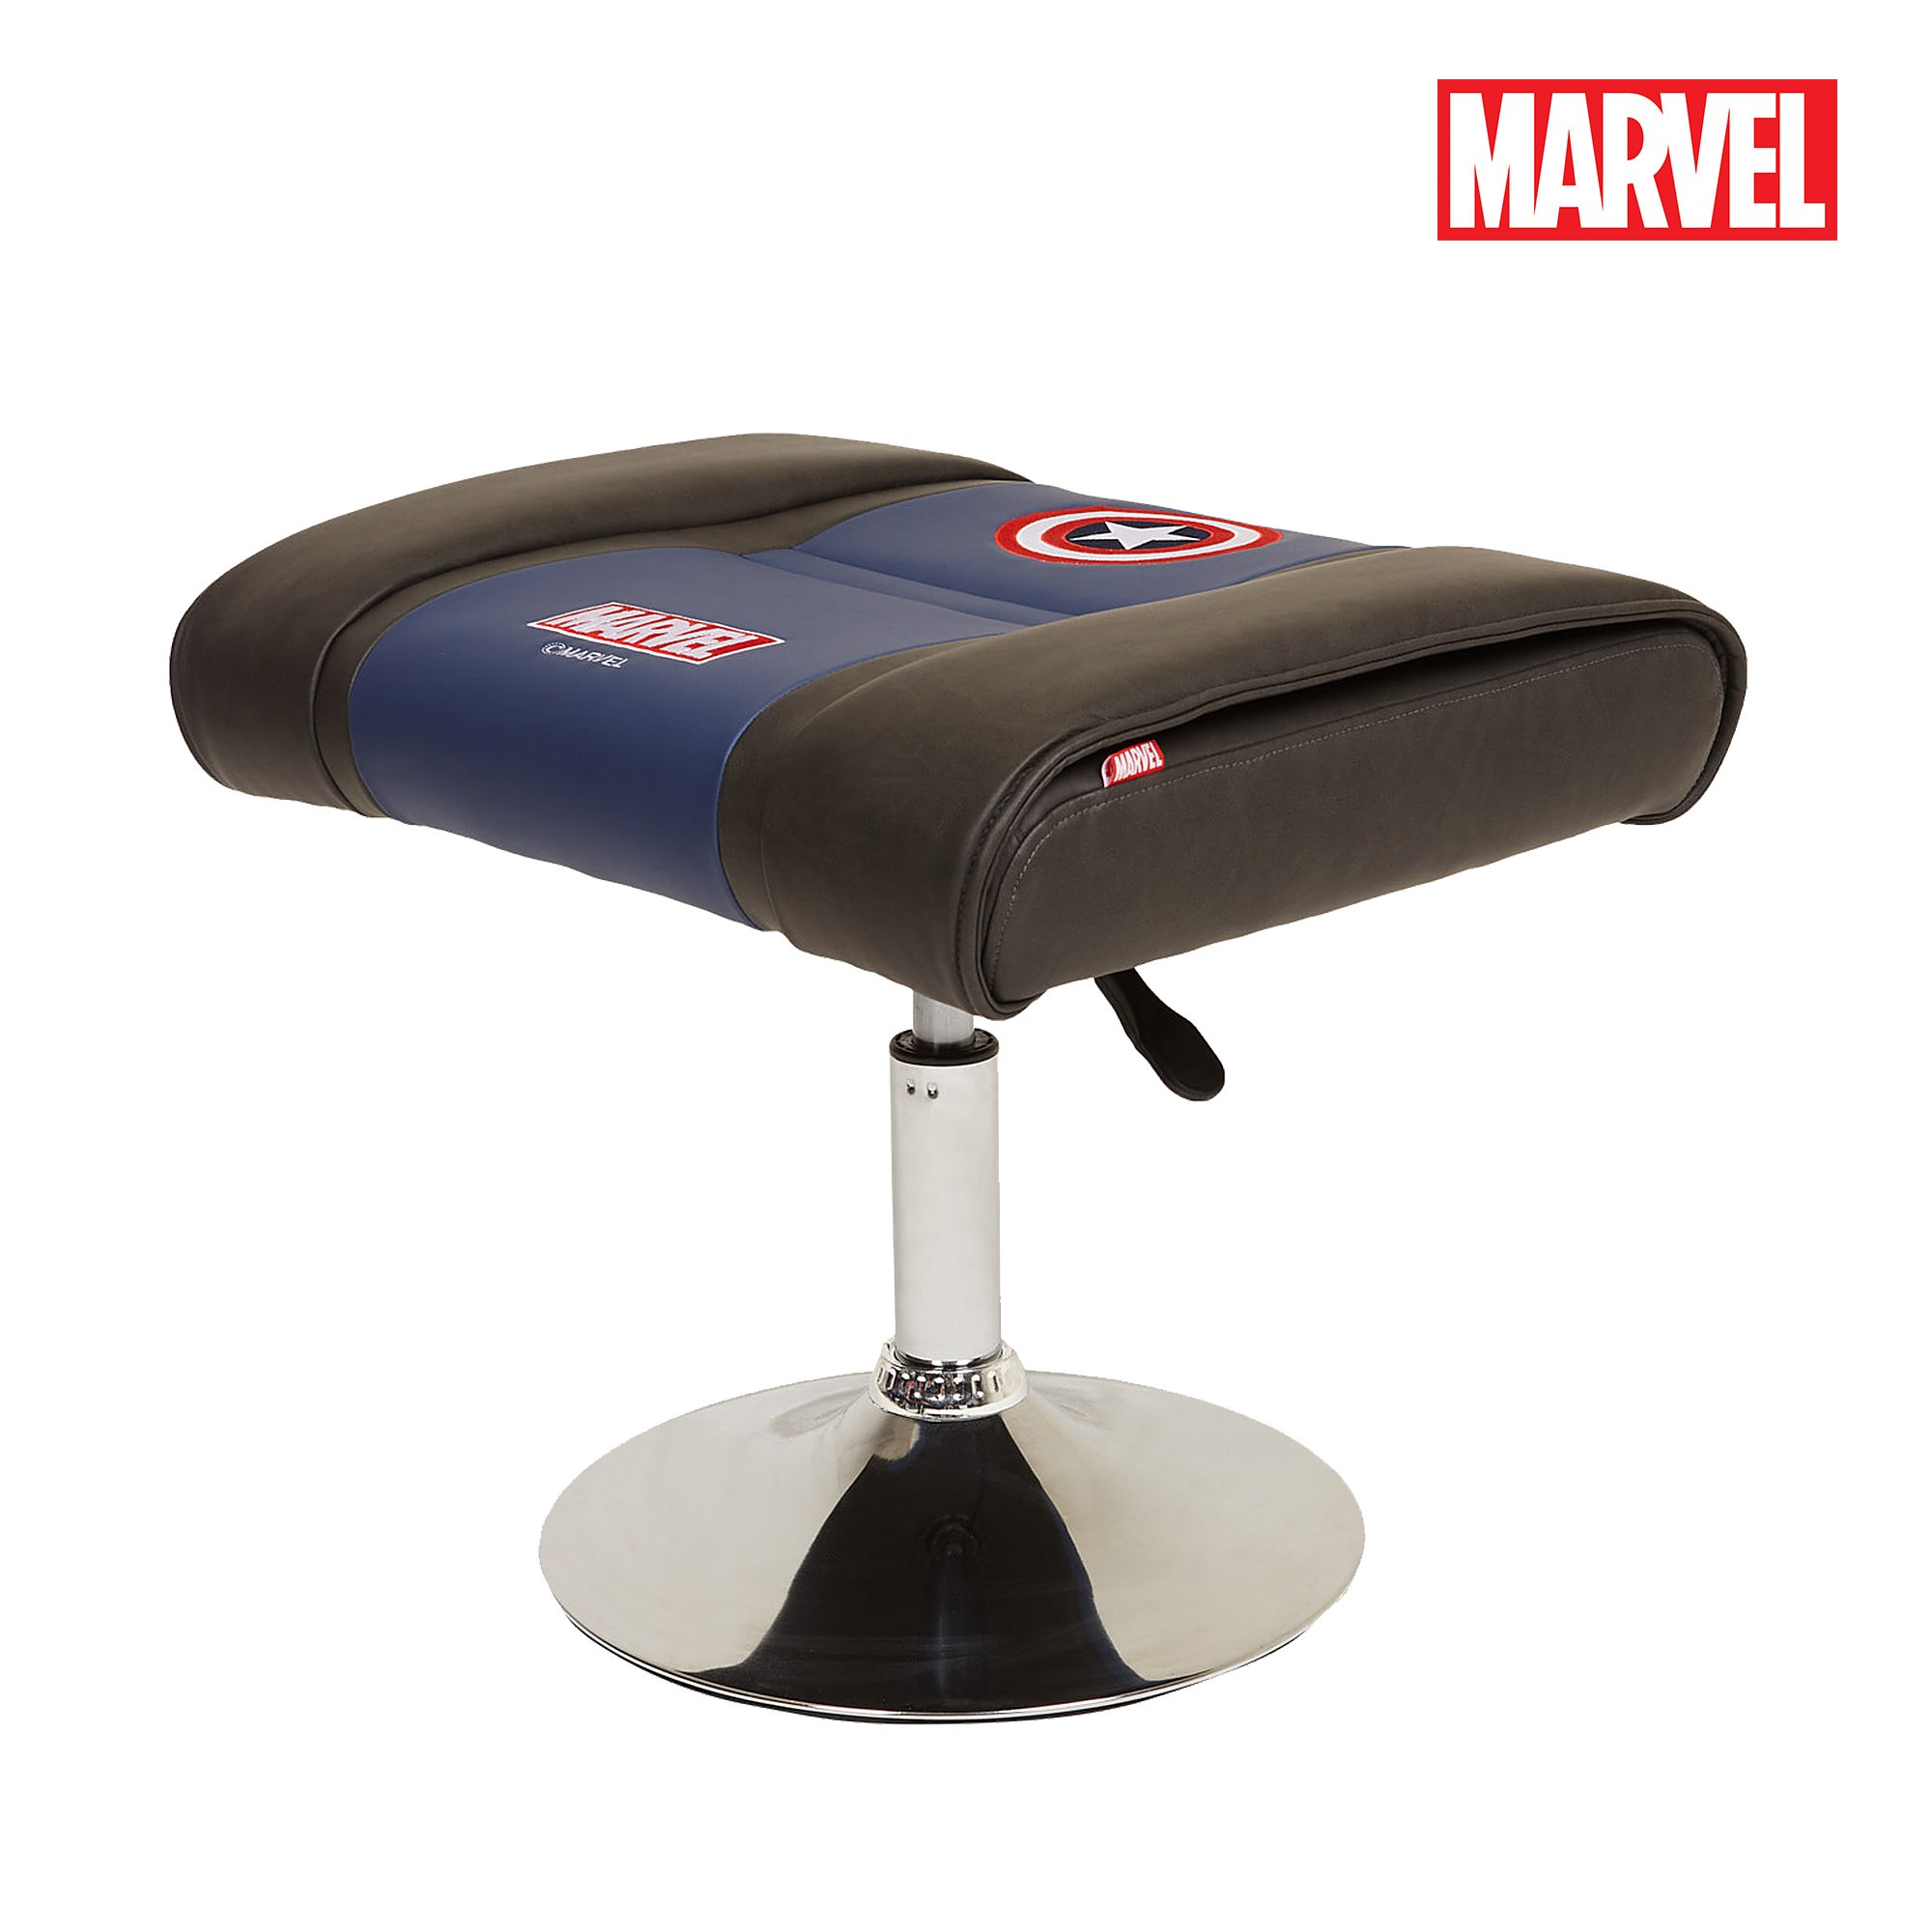 Neo Chair Licensed Marvel Premium Ottoman Foot Rest Seat Stool Makeup Chair : Height Adjustable Office Home Furniture Premium PU Leather, (Captain America, Blue) by Neo Chair